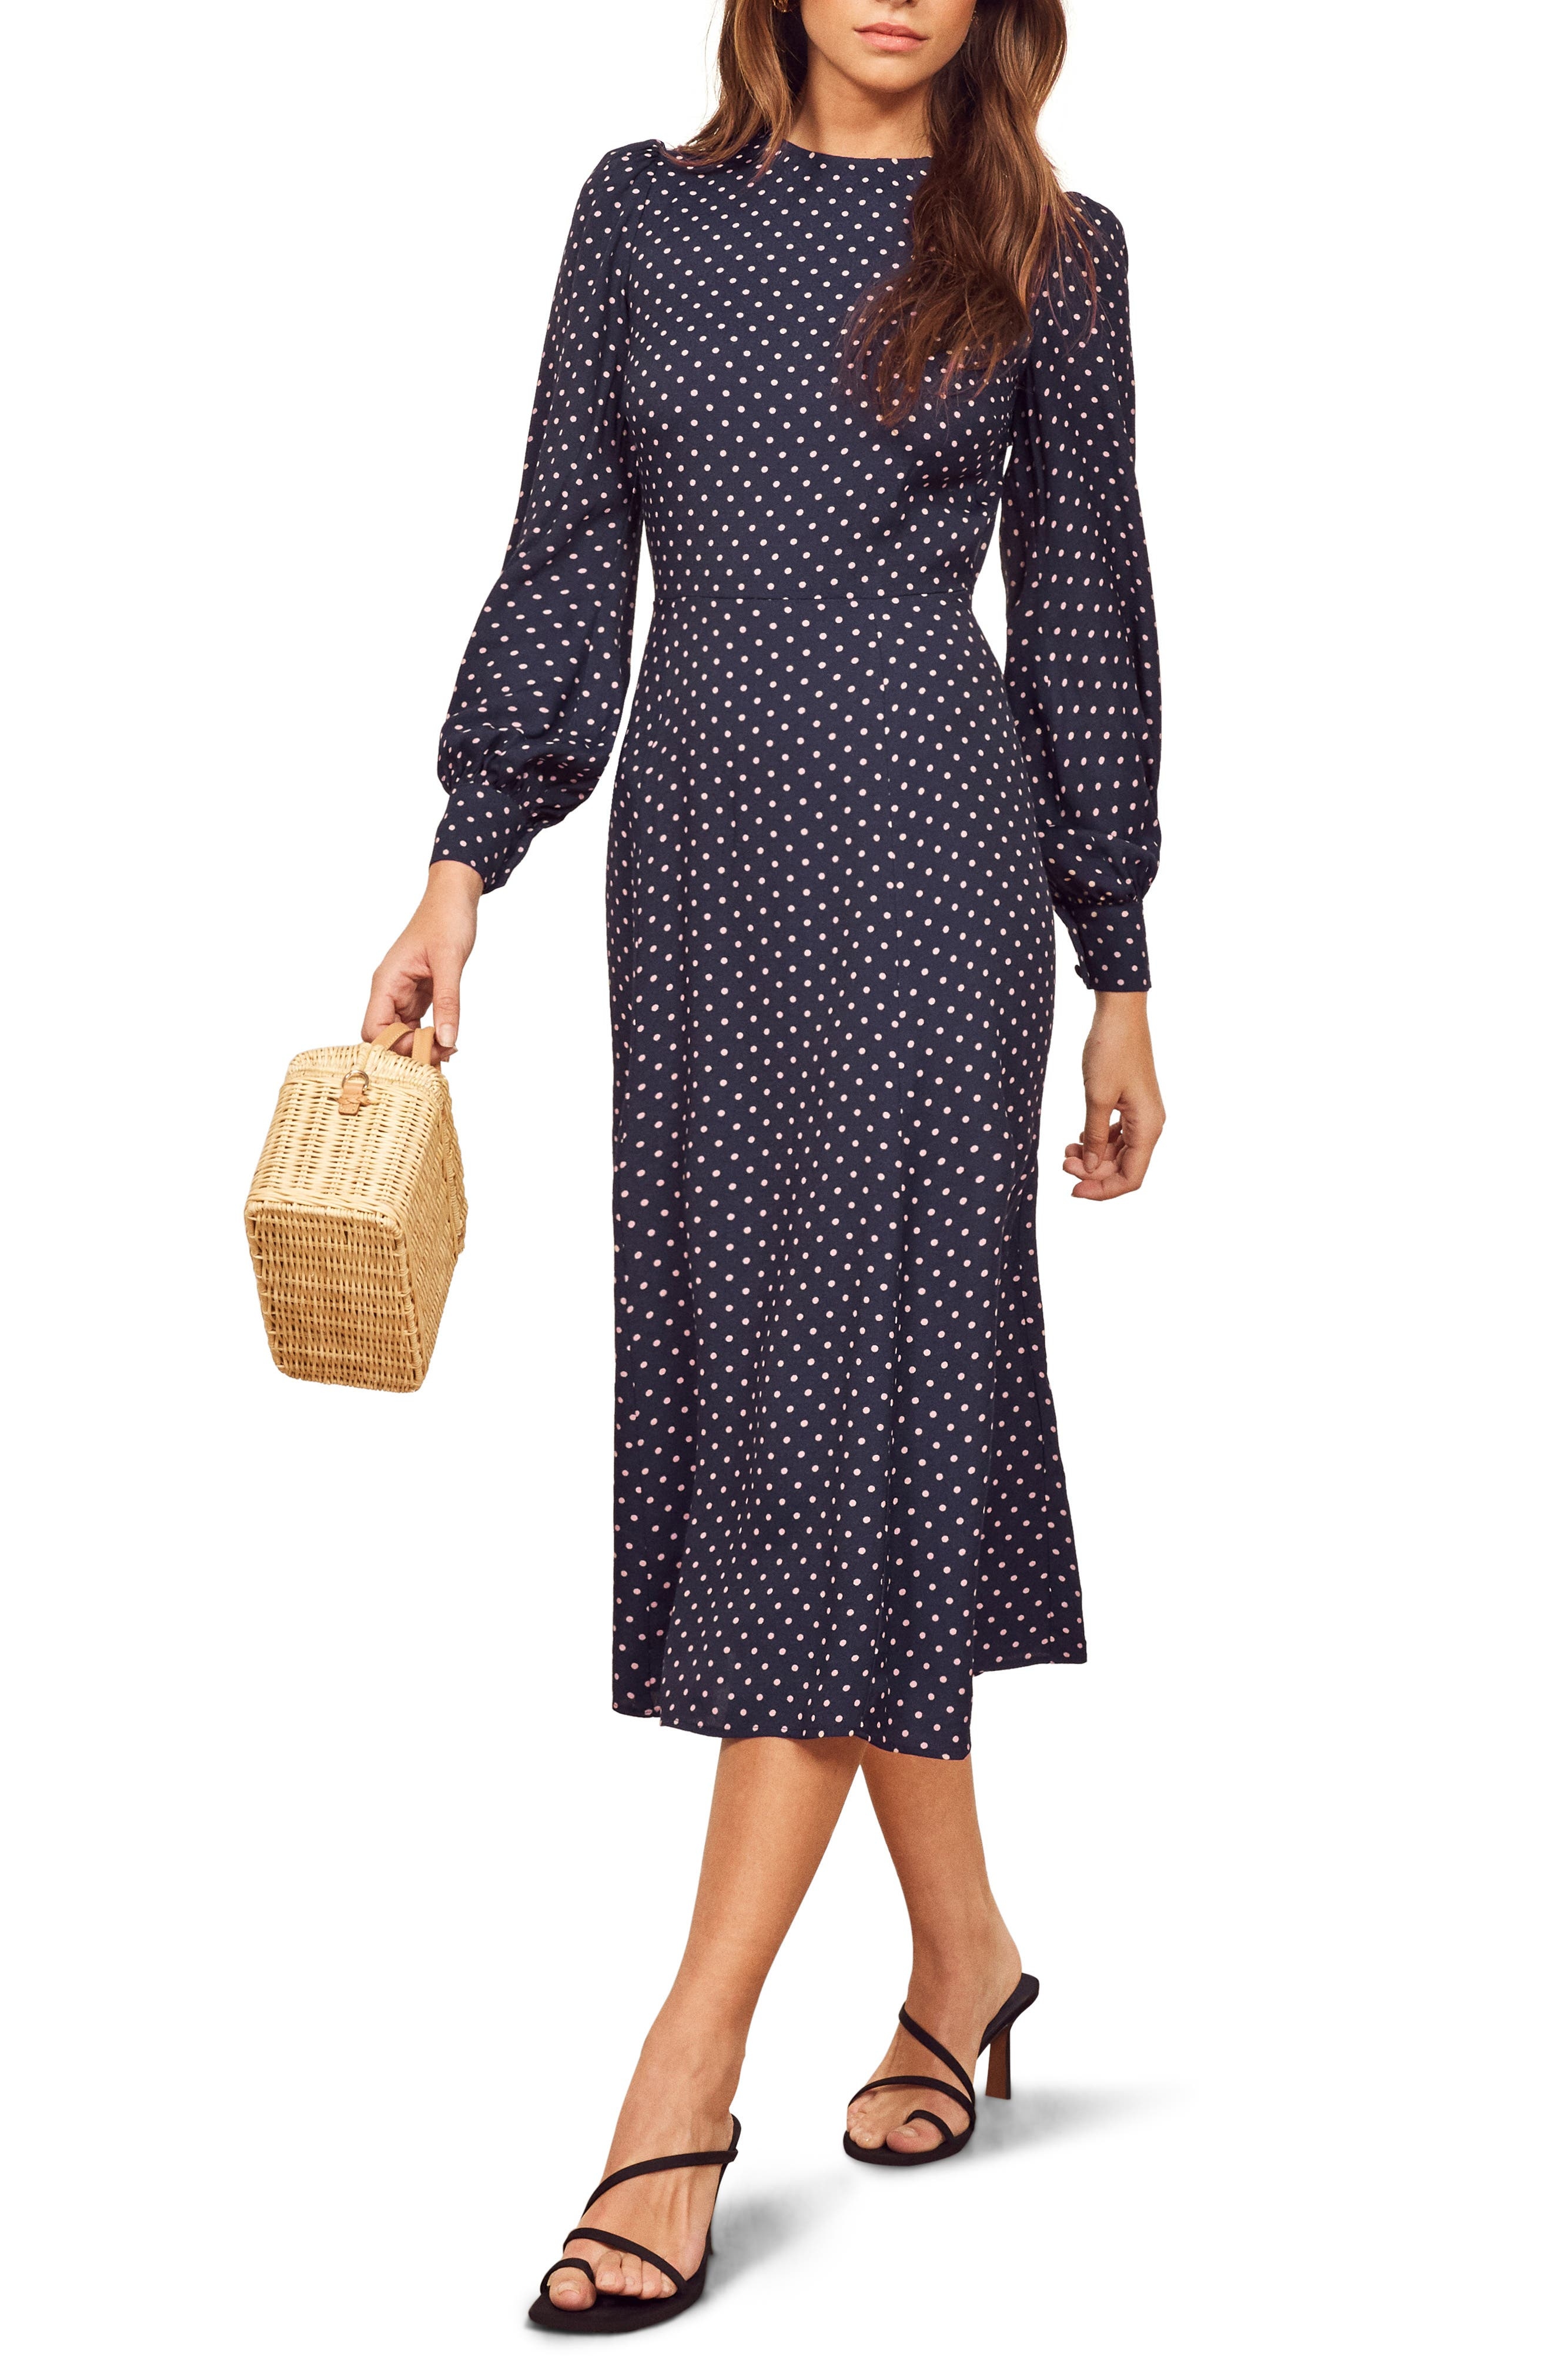 REFORMATION, Abigaile Long Sleeve Dress, Main thumbnail 1, color, AFTERNOON